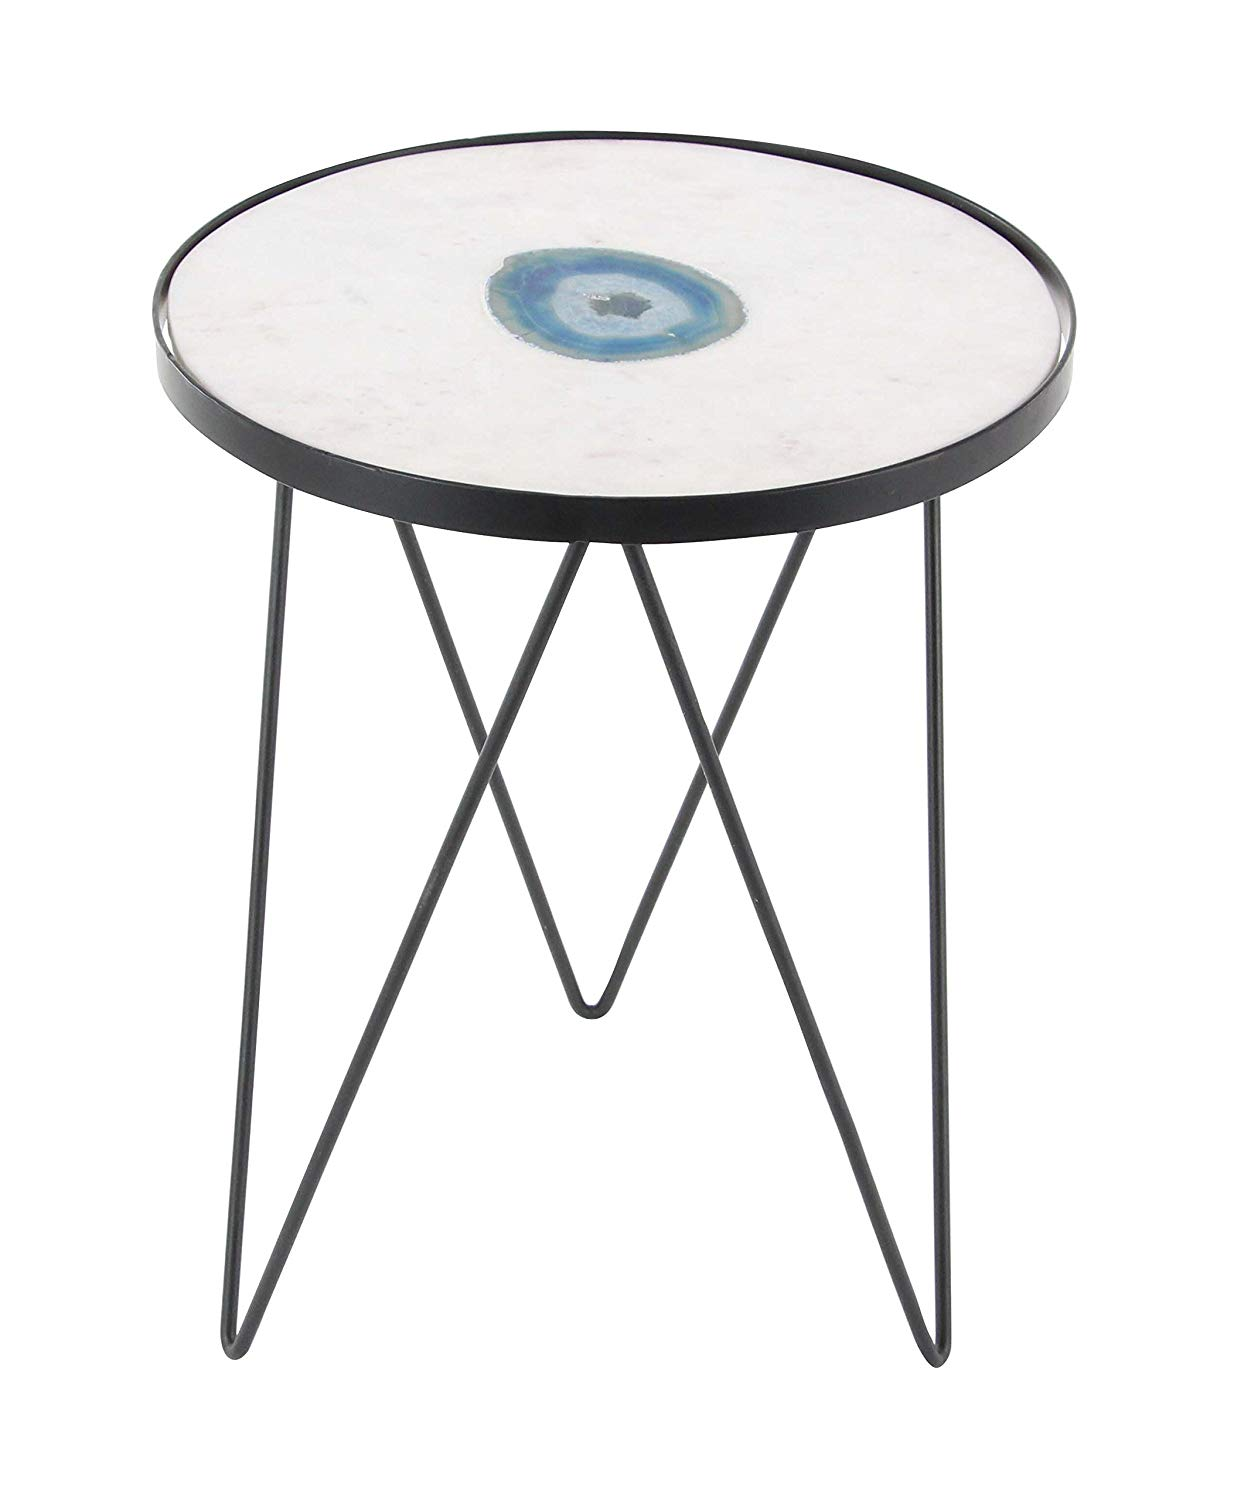 charming white marble and metal round accent table small for faux tablecloth pedestal wooden unfinished wood ideas covers decorating threshold side full size kitchen glass chrome